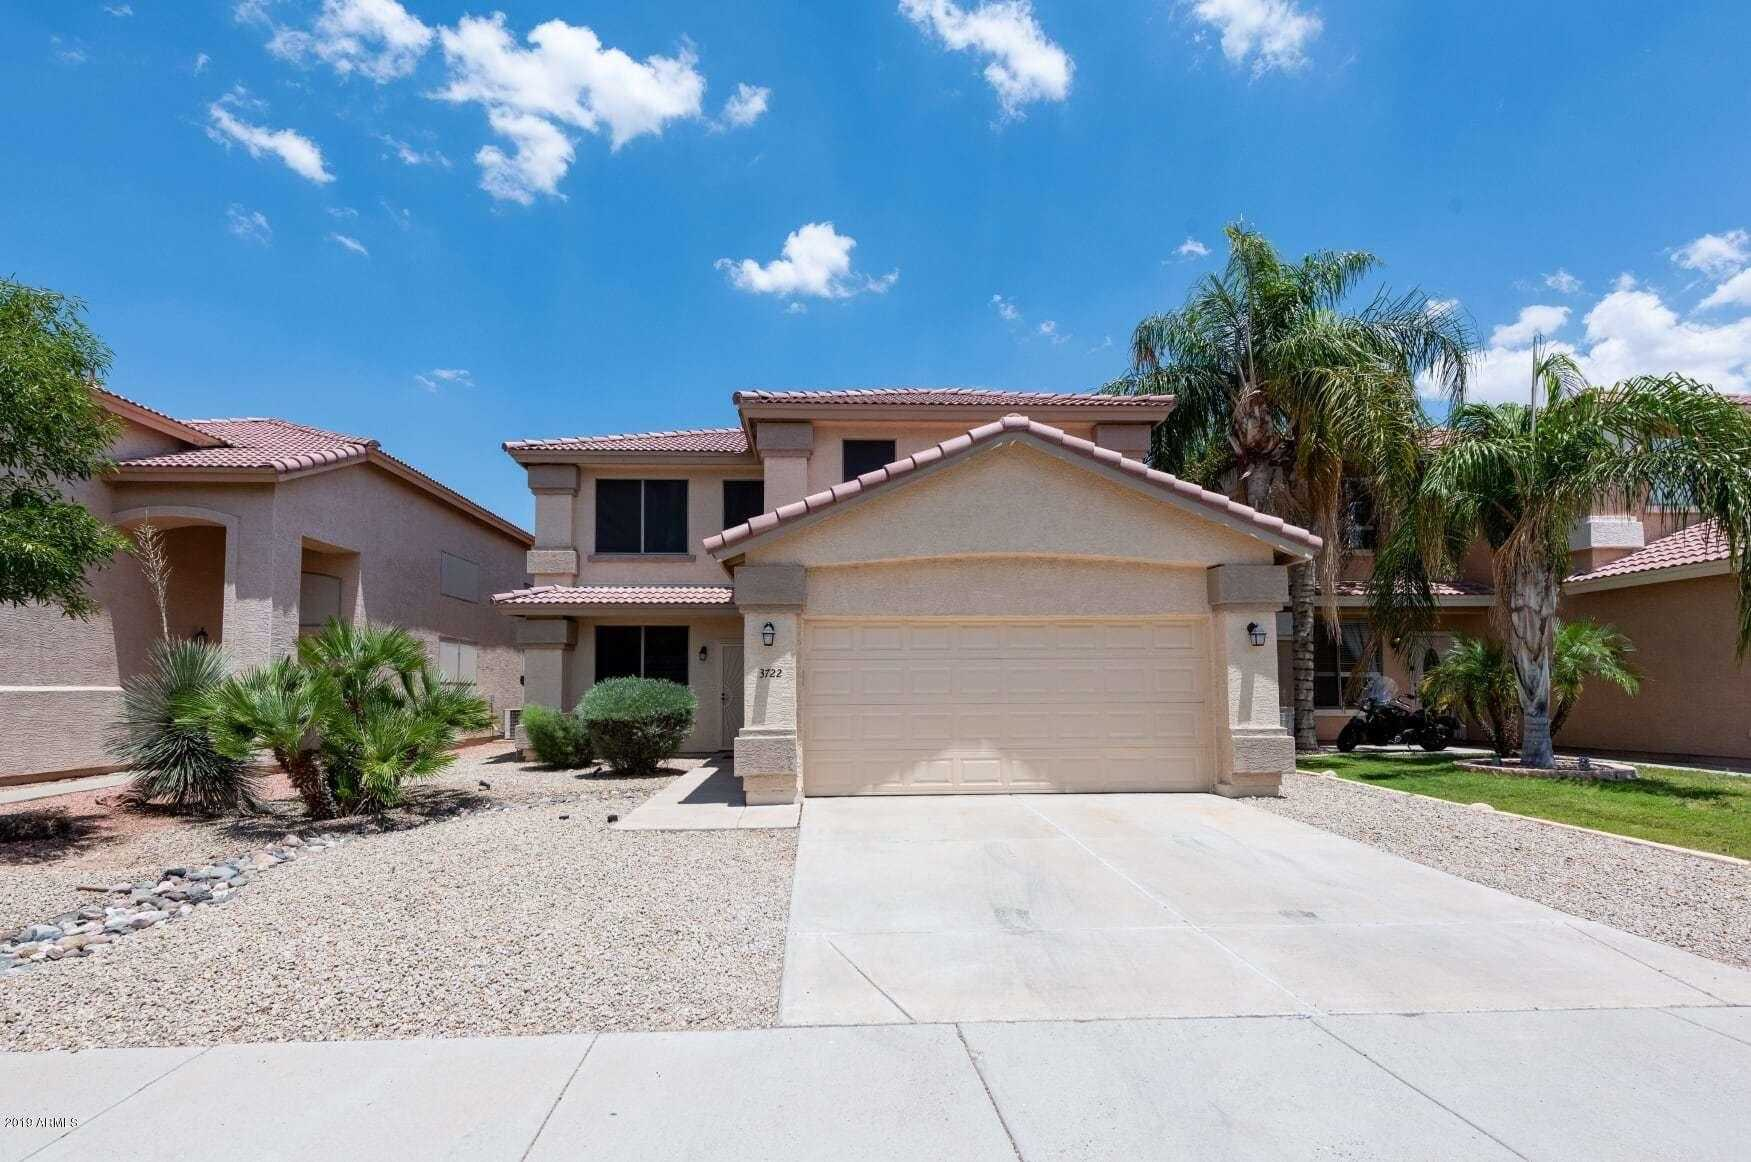 $353,000 - 5Br/3Ba - Home for Sale in Parcels 7c And 1 North Canyon Ranch, Glendale